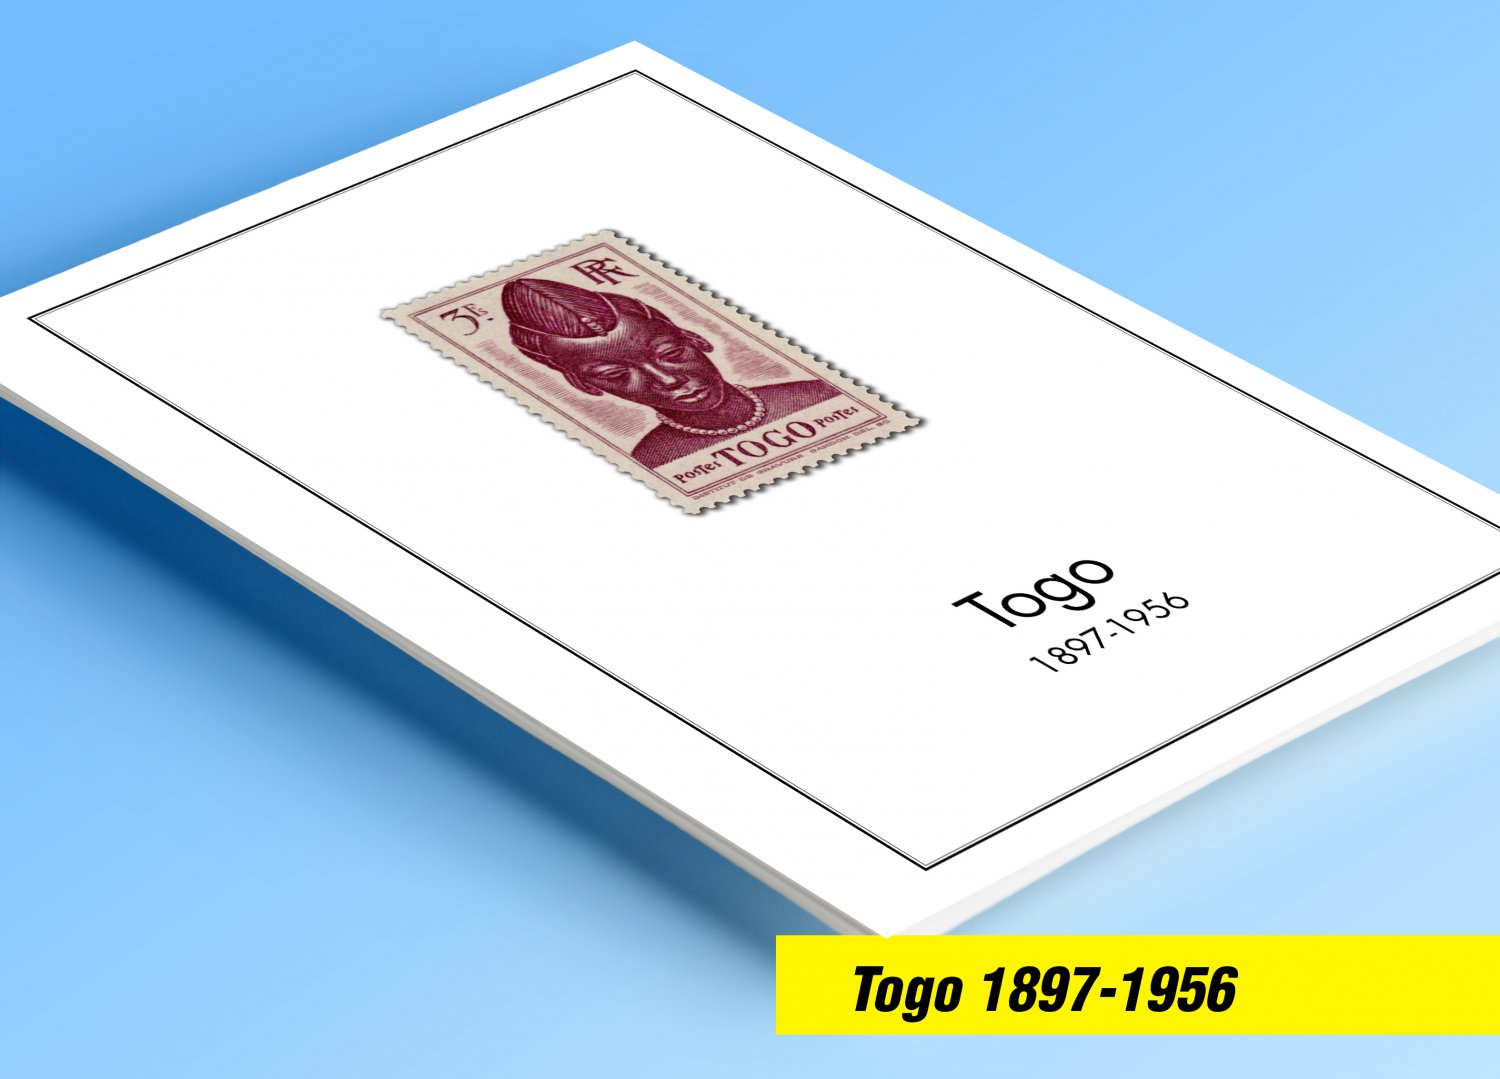 TOGO 1897-1956 COLOR PRINTED STAMP ALBUM PAGES  (26 illustrated pages)